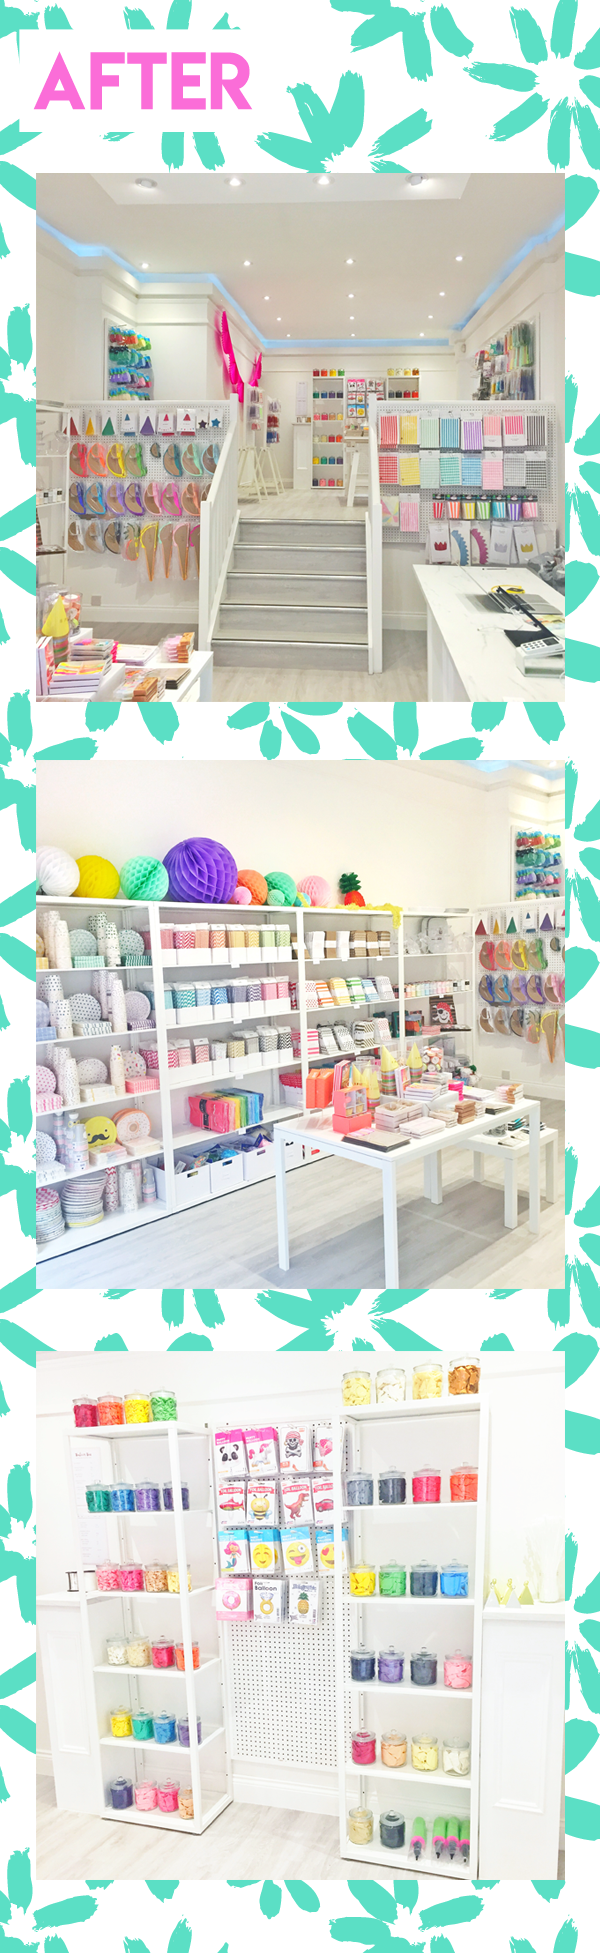 the-new-peach-blossom-shop.png